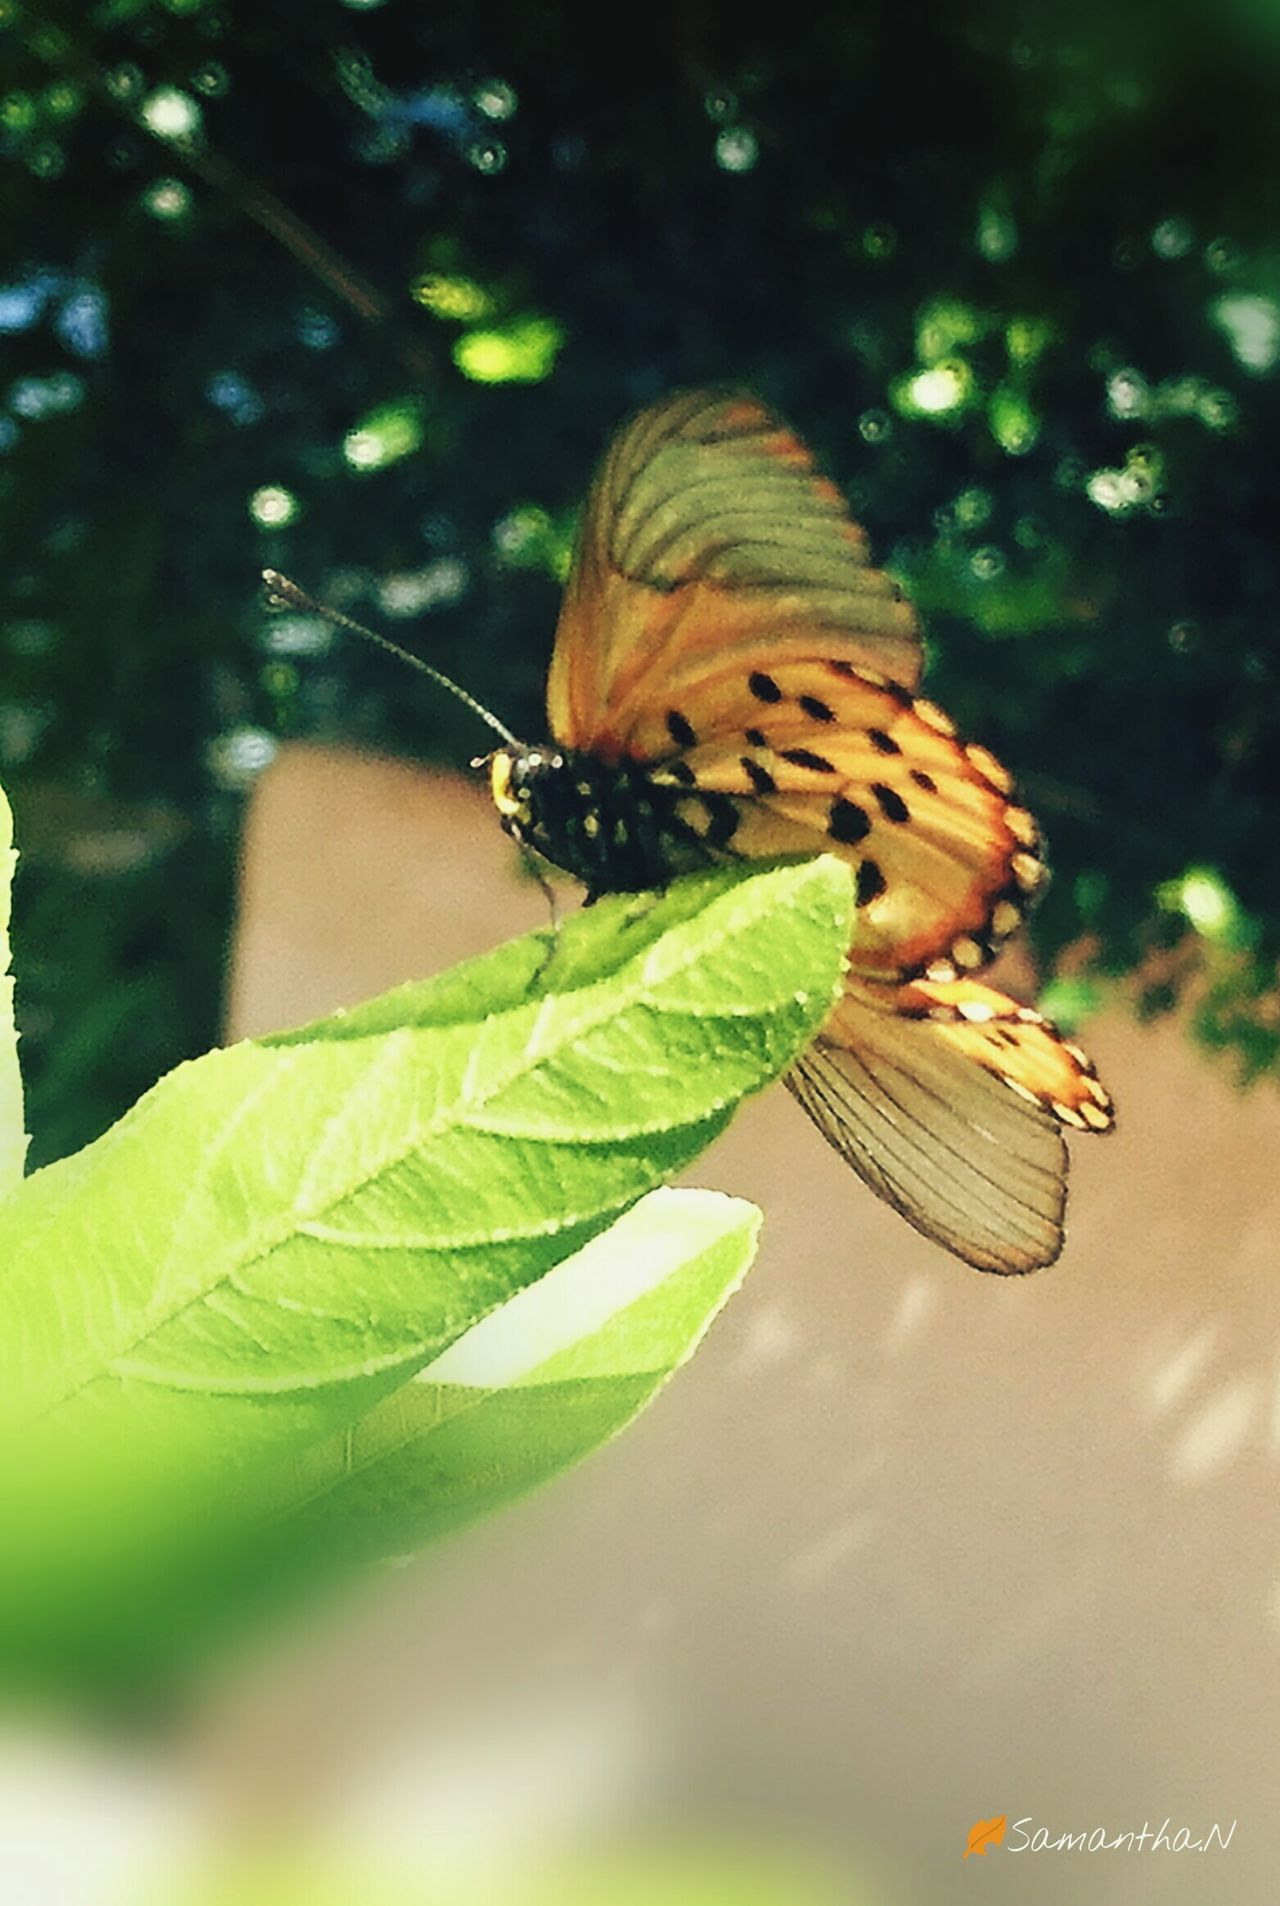 Butterfly - Insect Close-up Leaf Butterfly Nature Outdoors Beautiful Day Insect Beautiful Wings Inthemoment Wings Open Colour Of Life Taking Photos Love To Take Photos ❤ Naturecollection